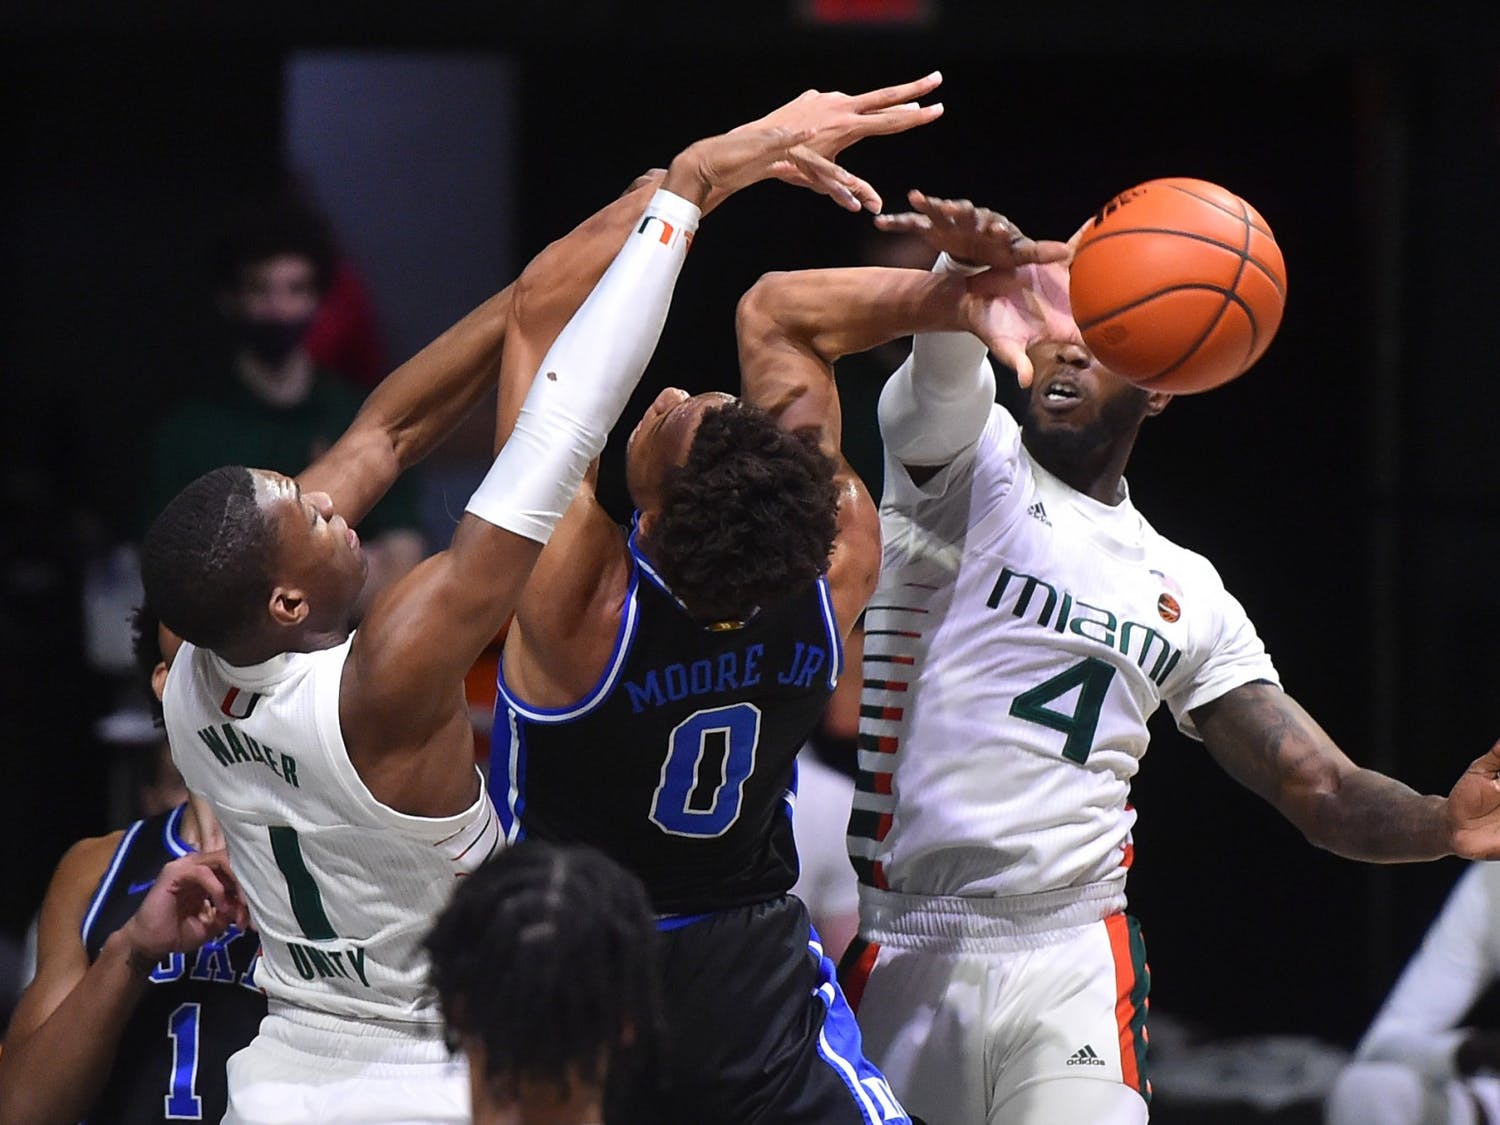 It was a sloppy game for the Blue Devils from start to finish.